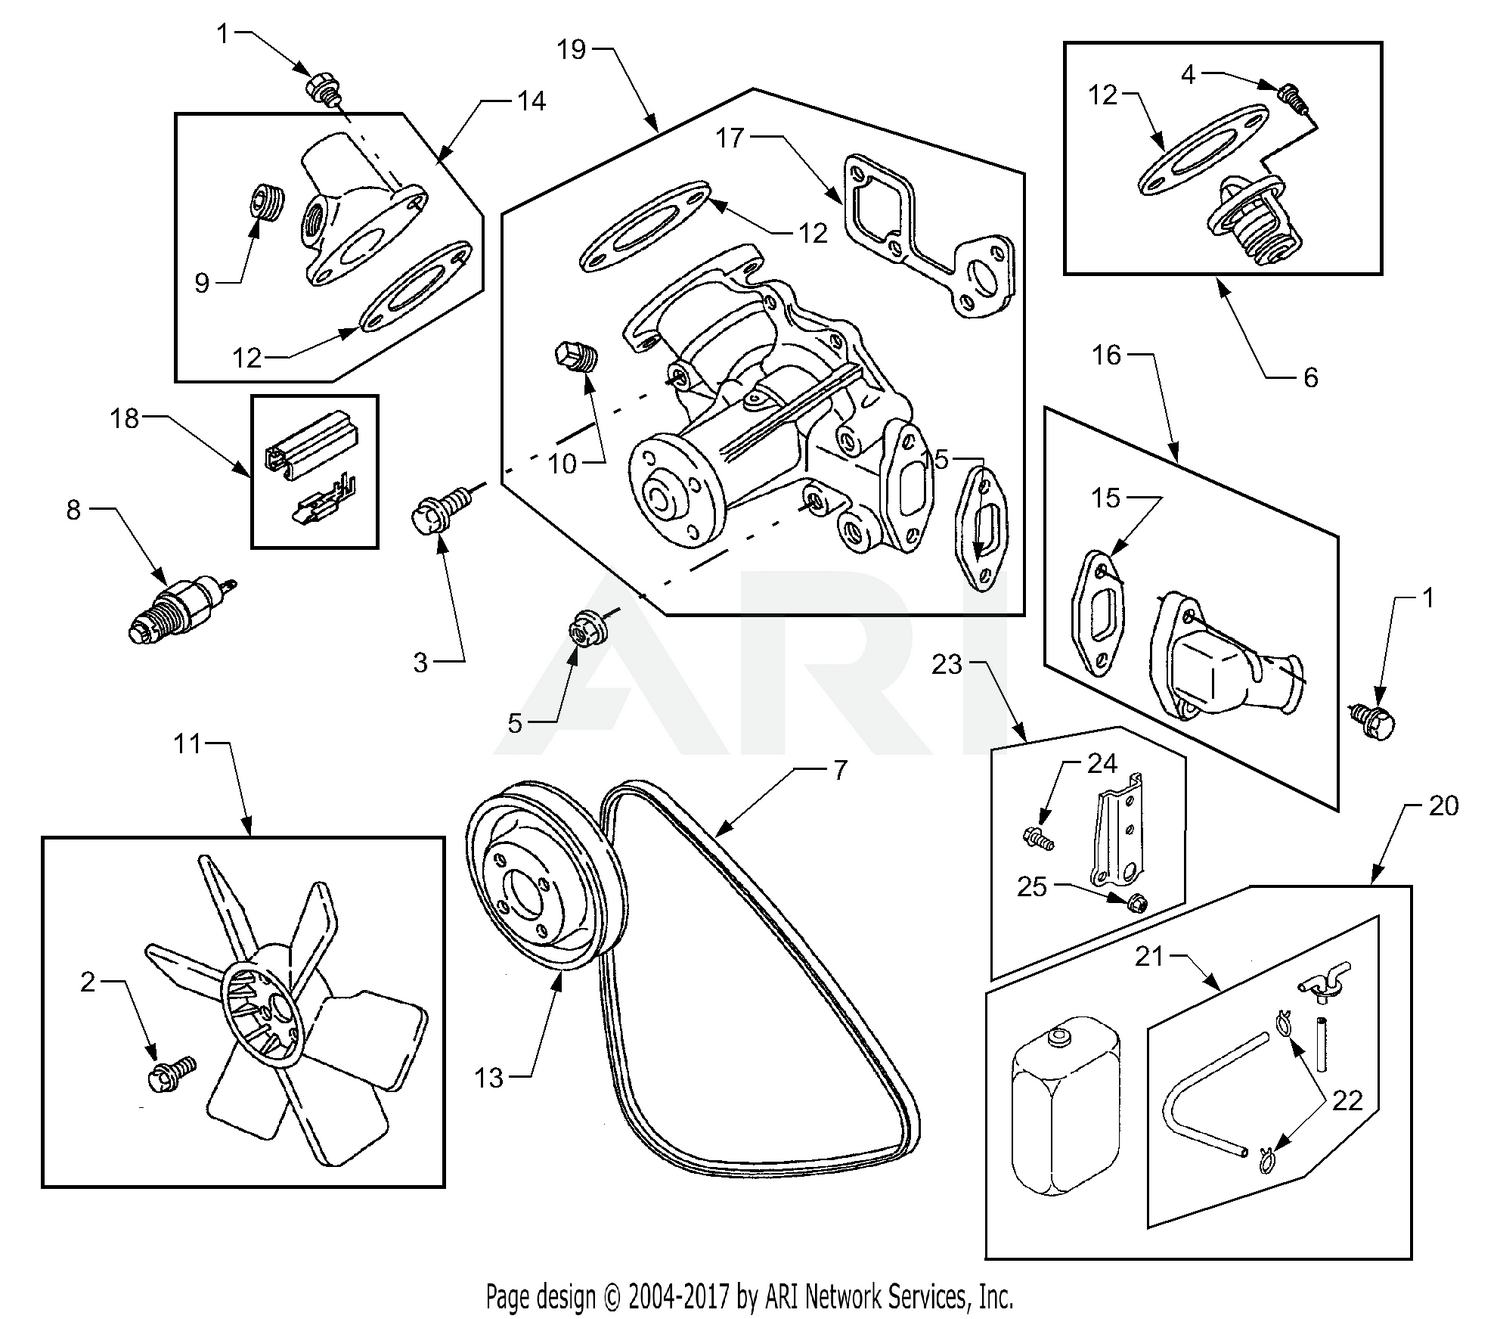 Cub Cadet 7264 Tractor 54ab746 100 54ad746 54at746 54bt746 Wiring Diagram Are Covered Step By Instruction Diagrams Illustration Schematic And Specifications To Repair Troubleshoot Instant Download This Is The Most